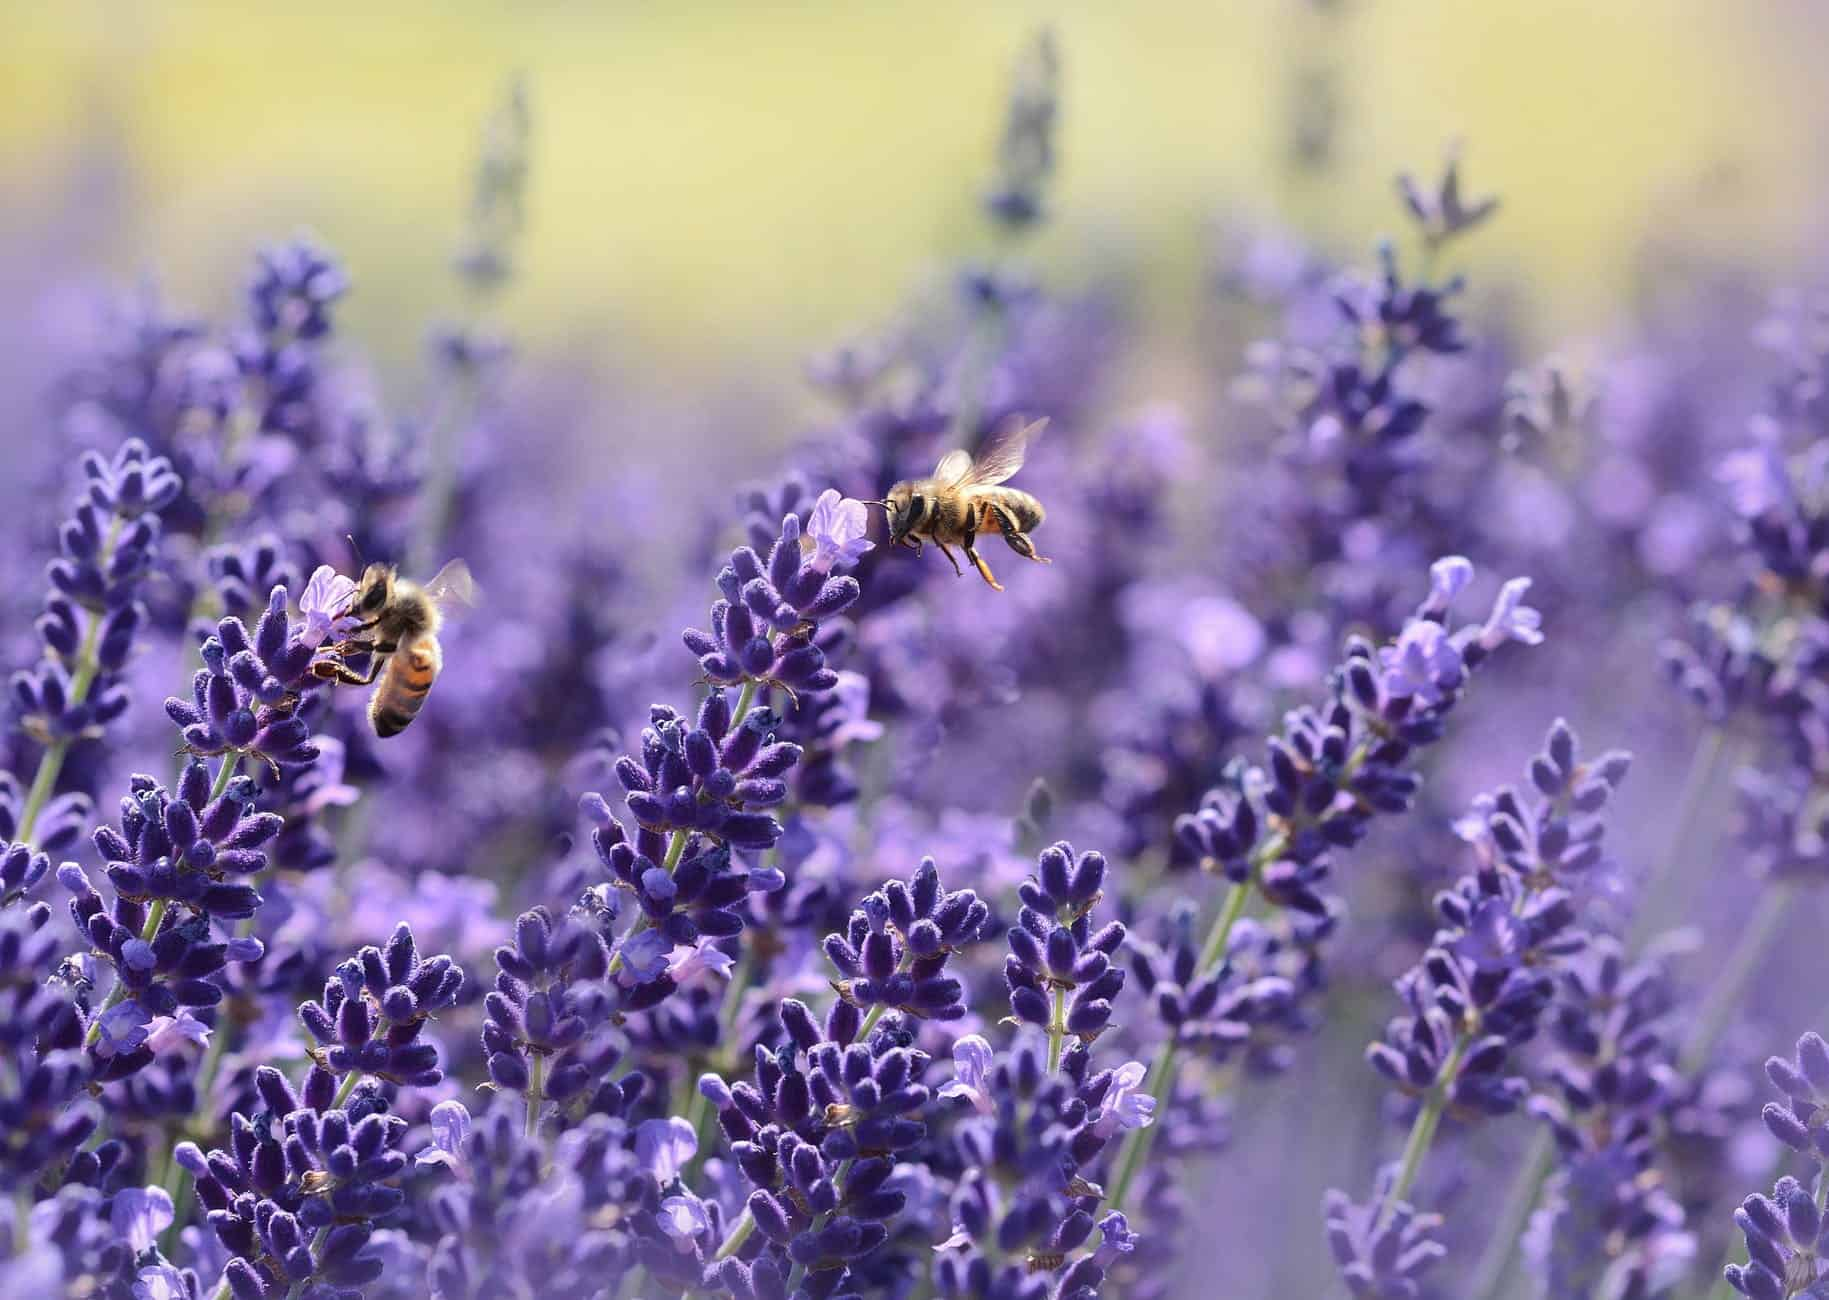 SC Lavender Farms to Visit | The Common Traveler | image: bees on purple flower | Lavender Farms by popular US travel blog, The Common Traveler: image of bees on lavender flowers.